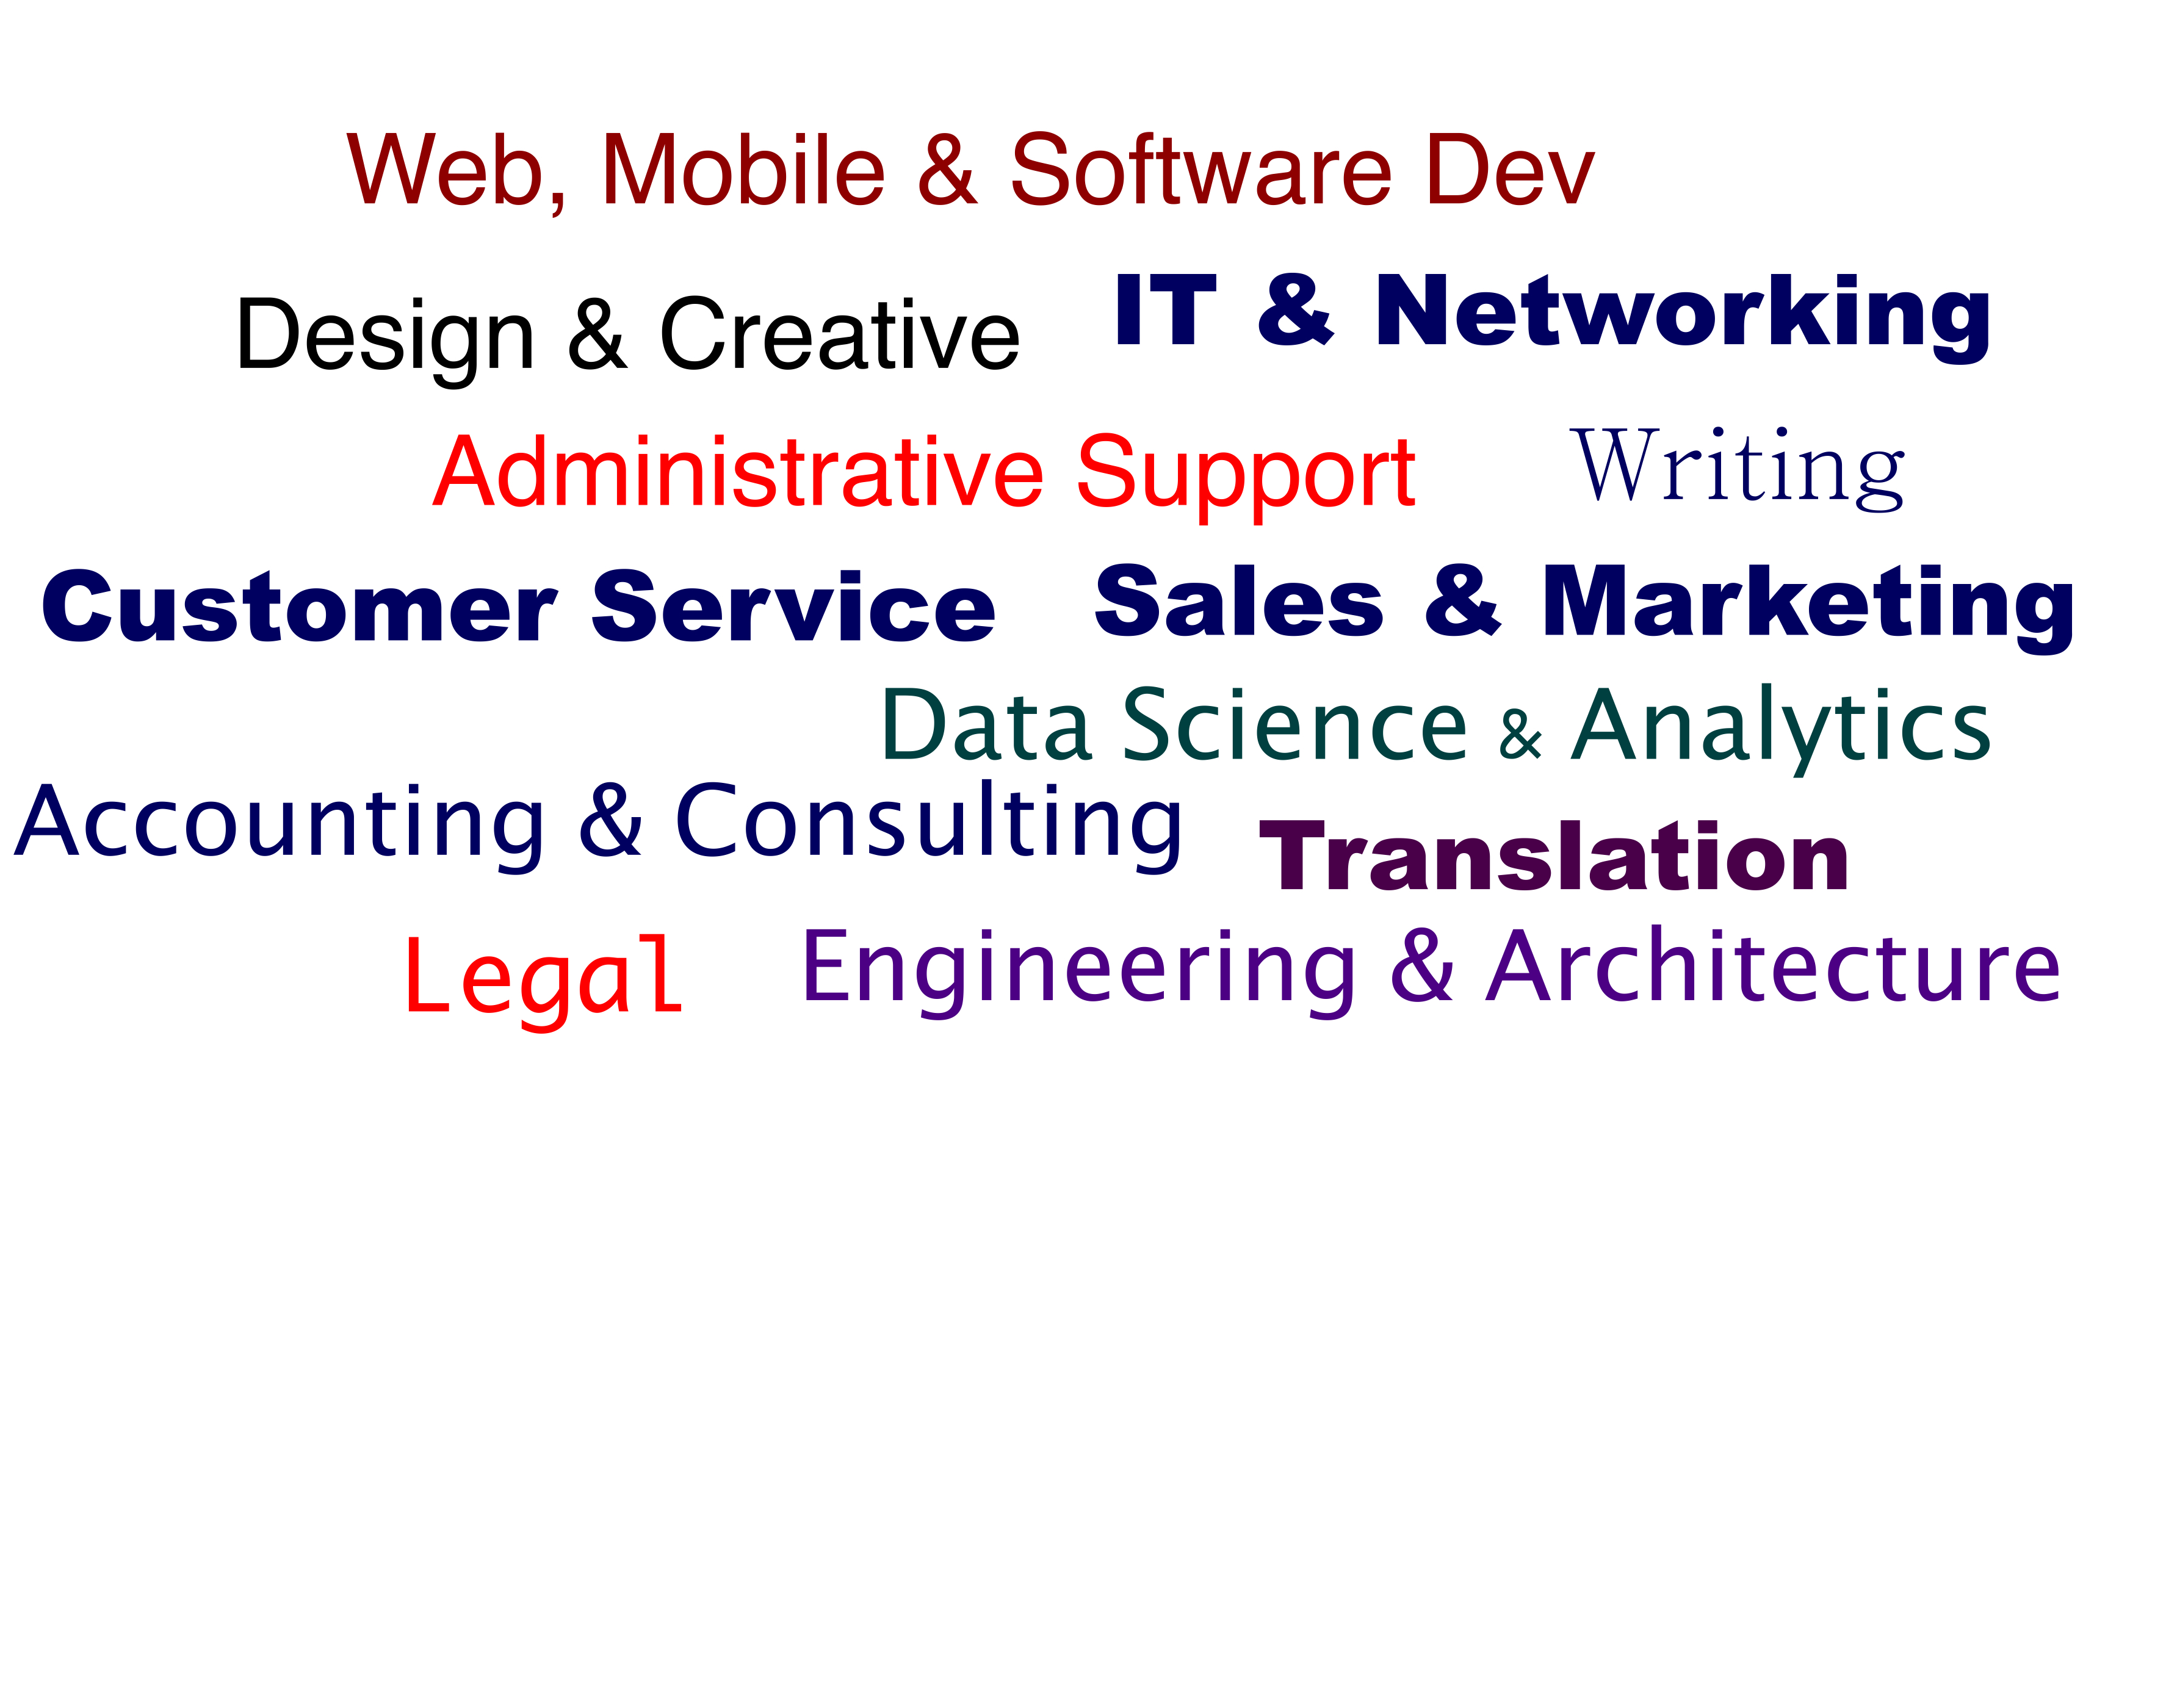 Writing services online marketplace management